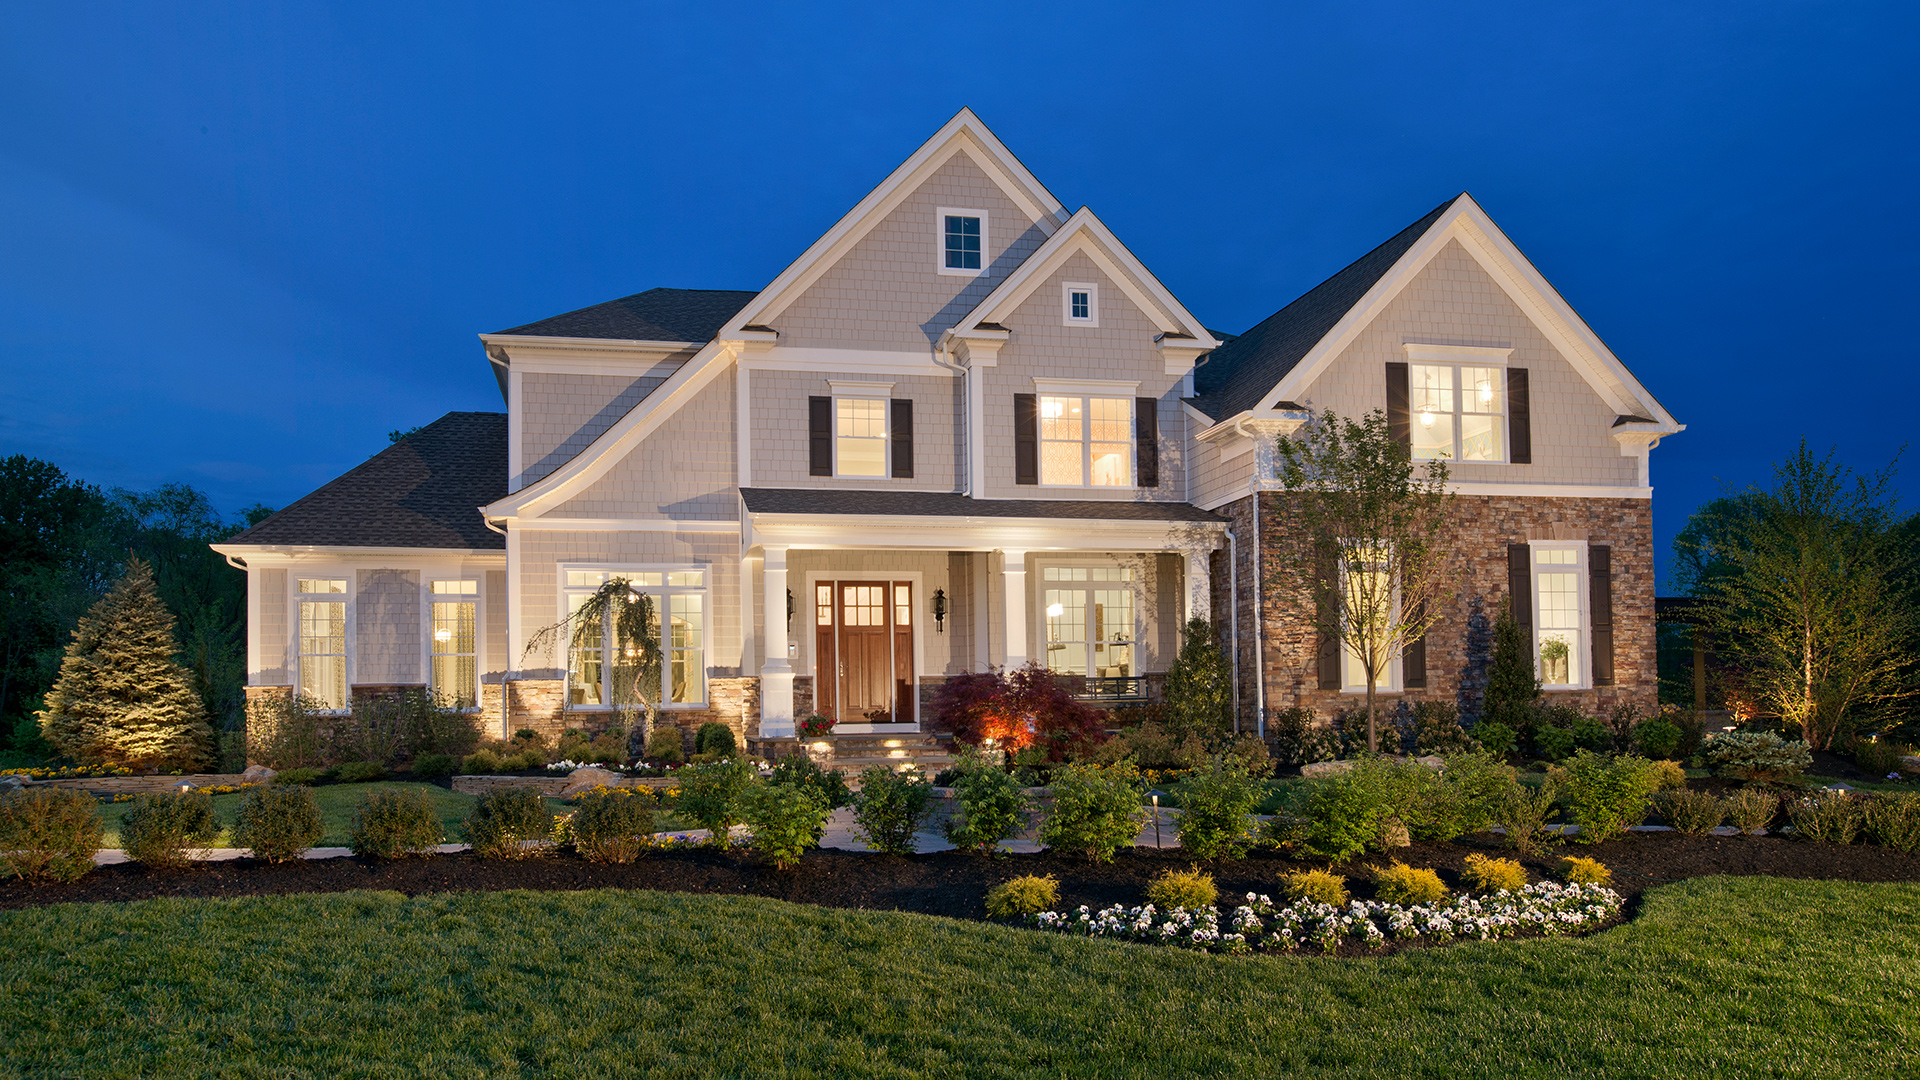 New luxury homes for sale in upper saddle river nj for Contemporary houses for sale in nj